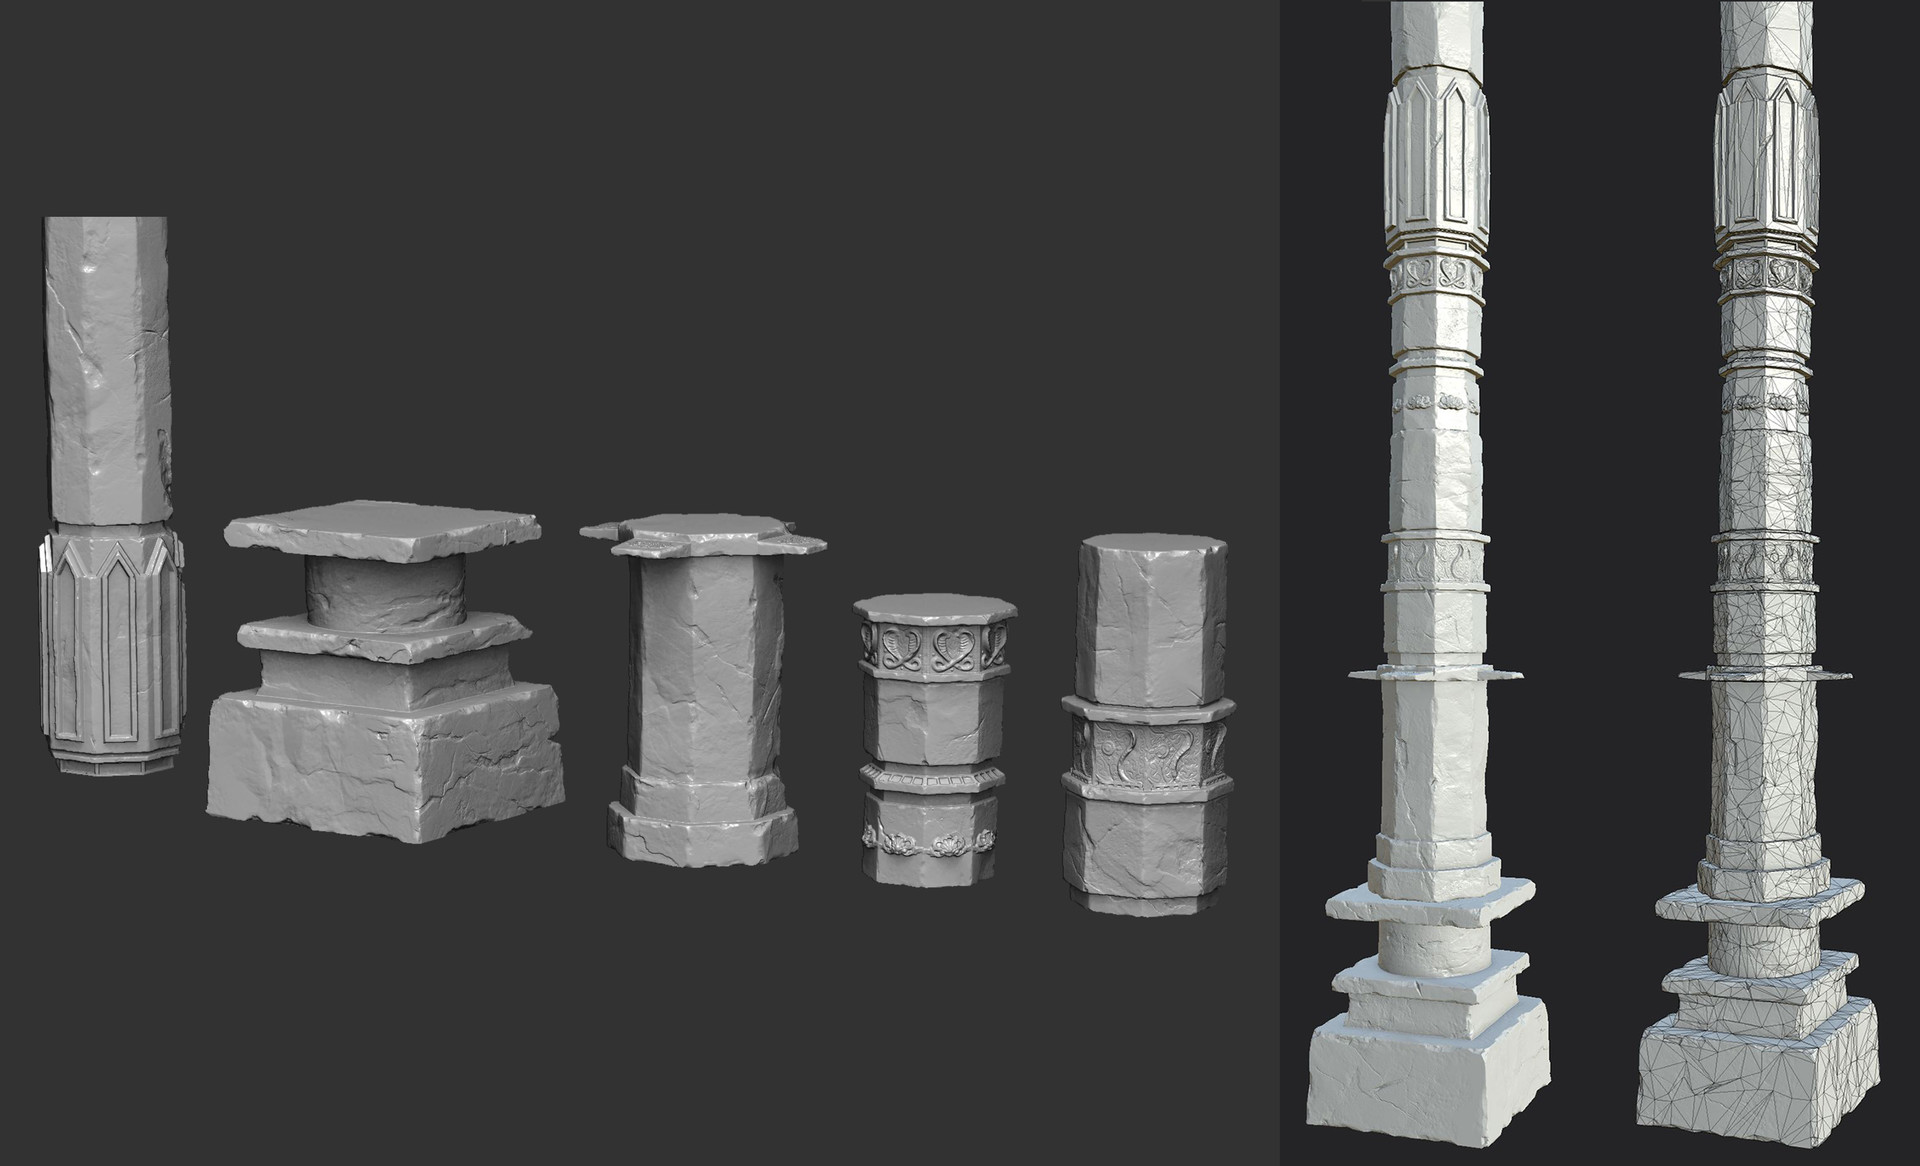 Zbrush model on left side, low poly bake and wire-frame on right side